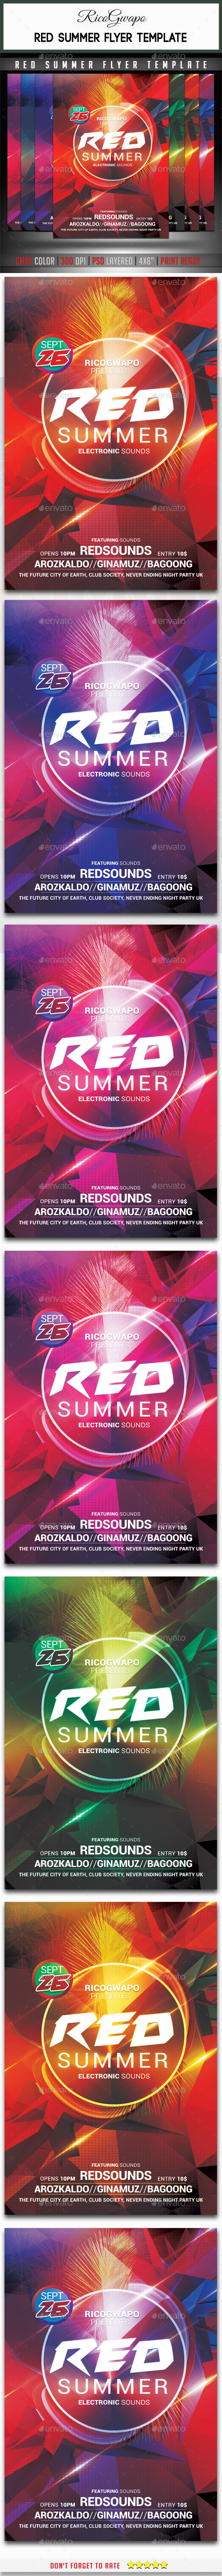 Red Summer Flyer Template - Clubs & Parties Events